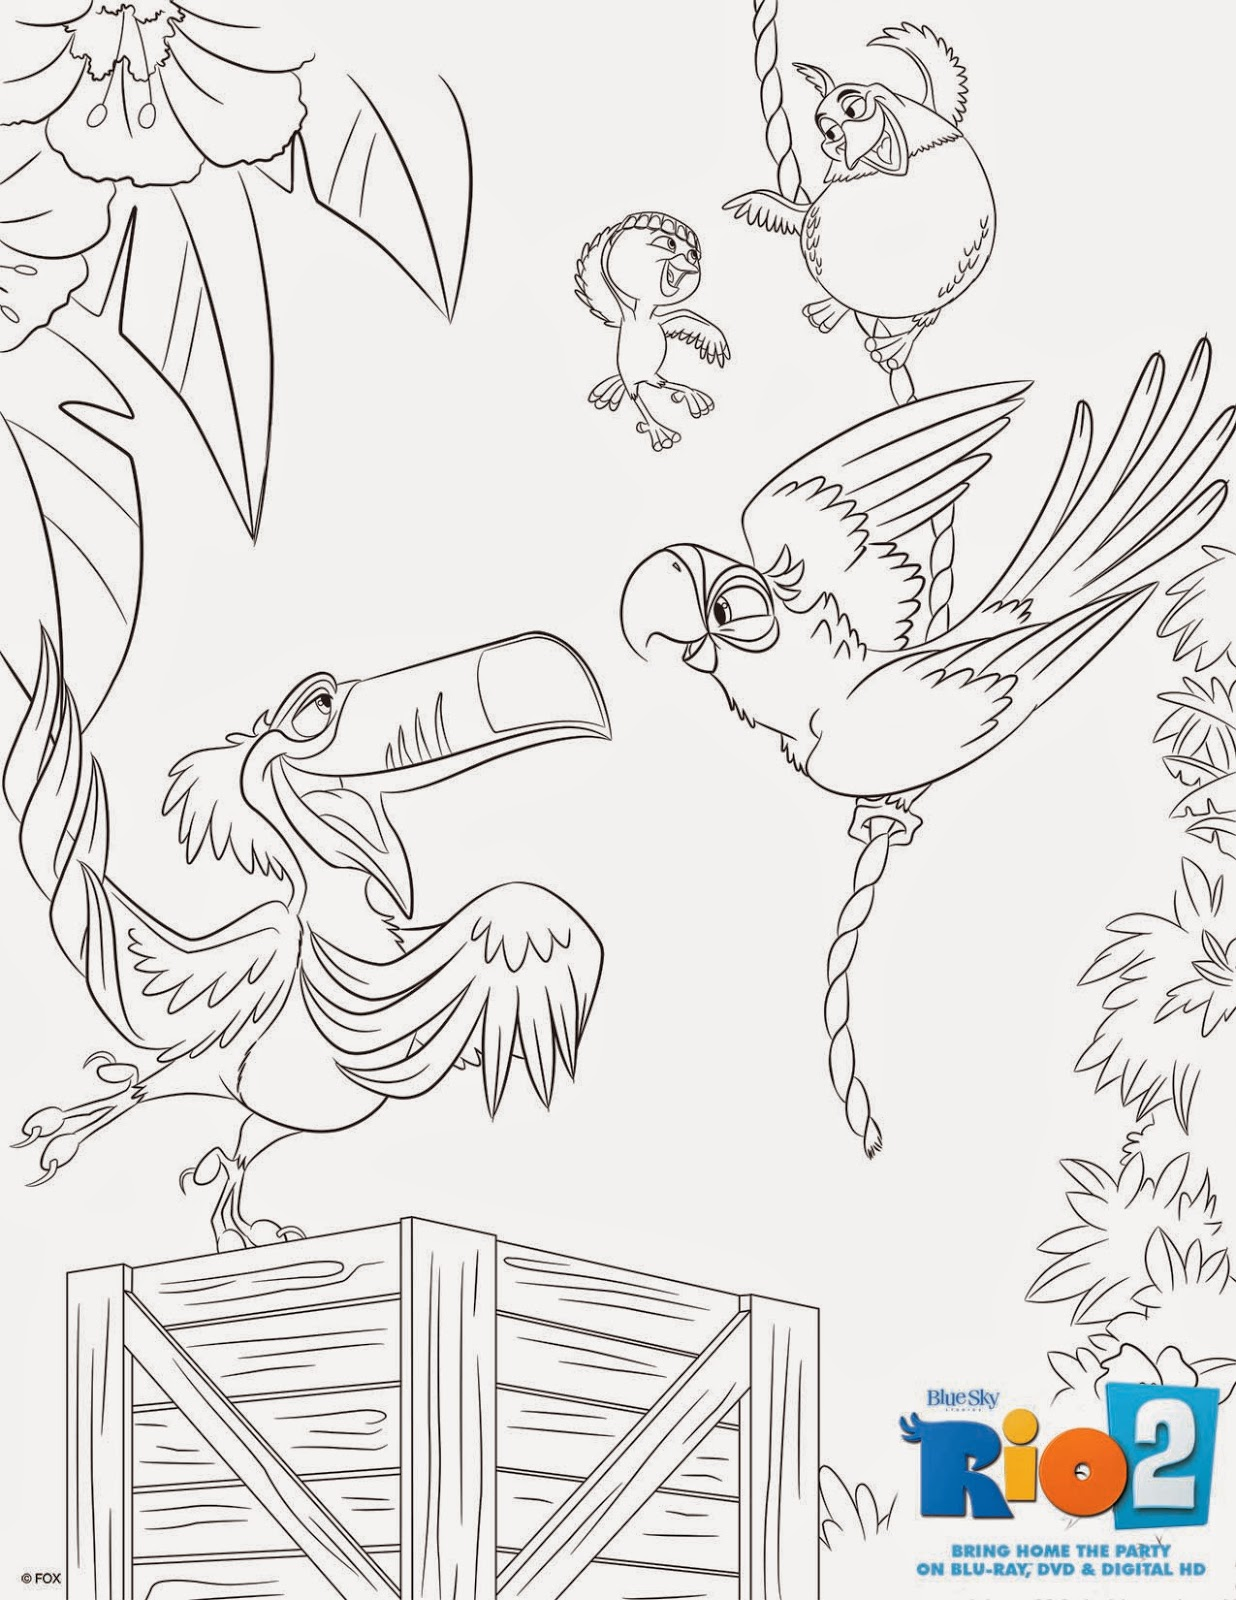 Nigel Rio Coloring Pages